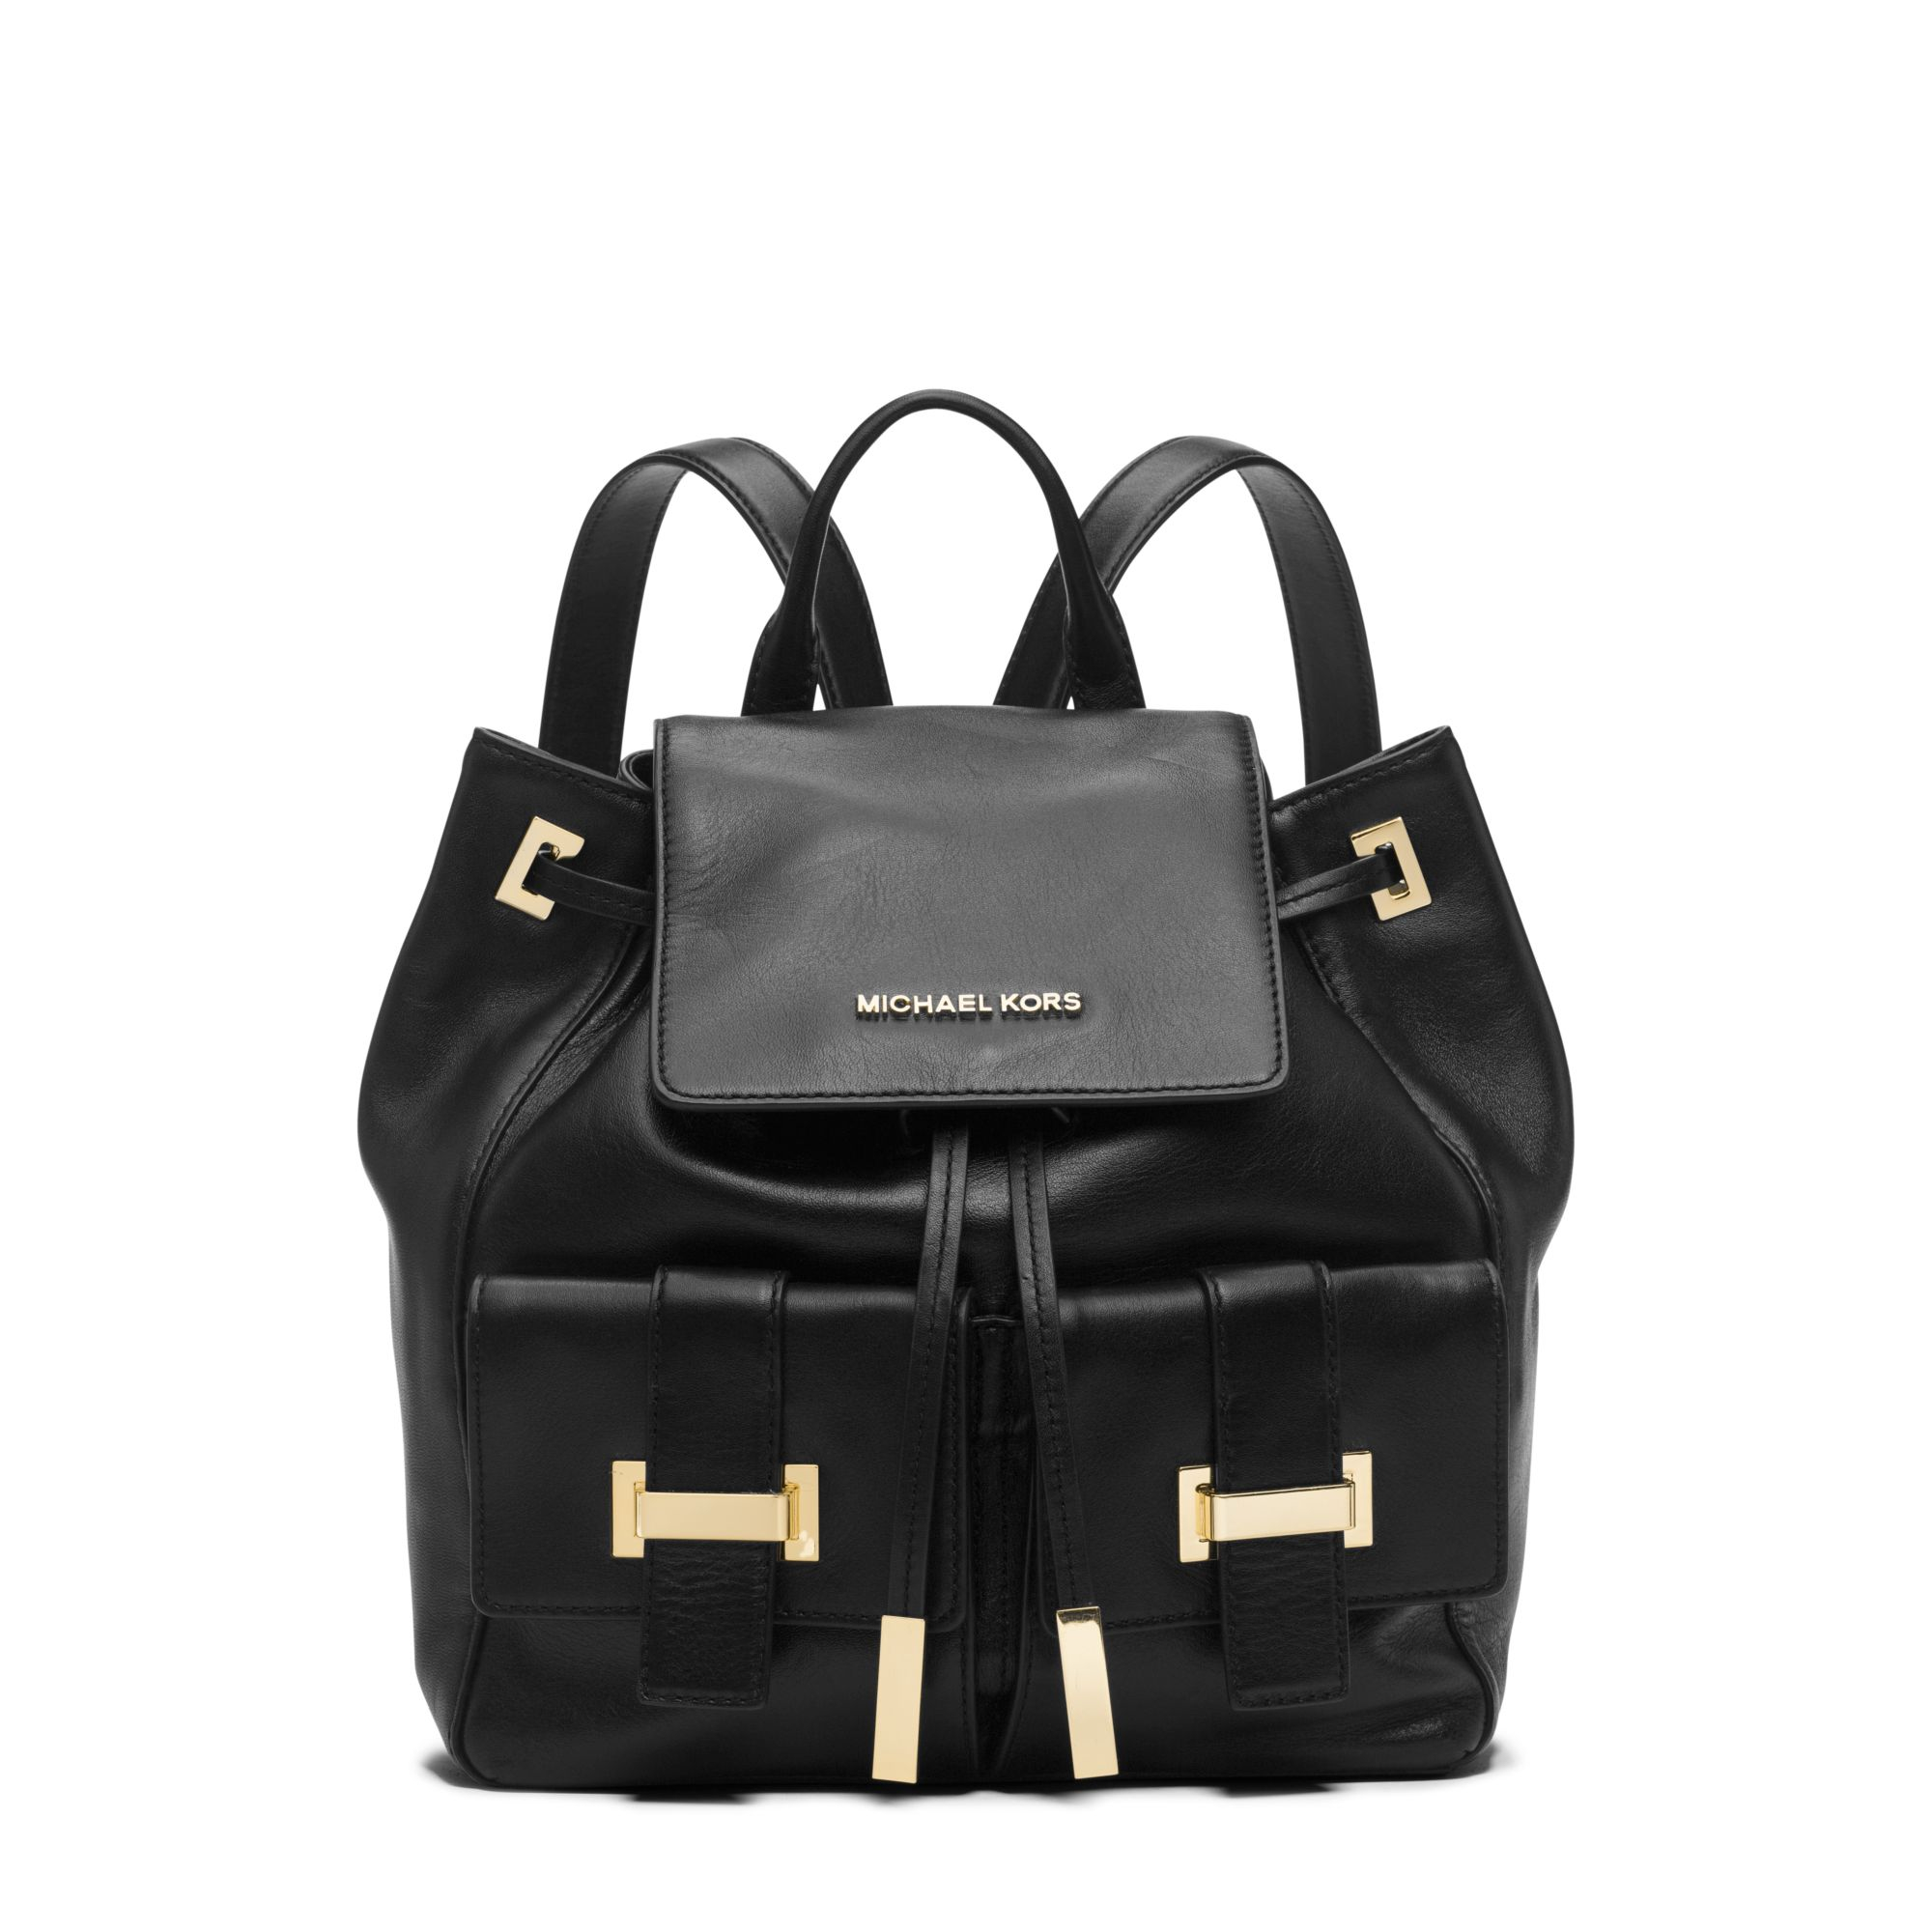 08b5d3ac5c0e ... large canvas shoulder bag d0866 7d520 official lyst michael kors marly  drawstring leather backpack in black 8eeba 1f7f7 ...